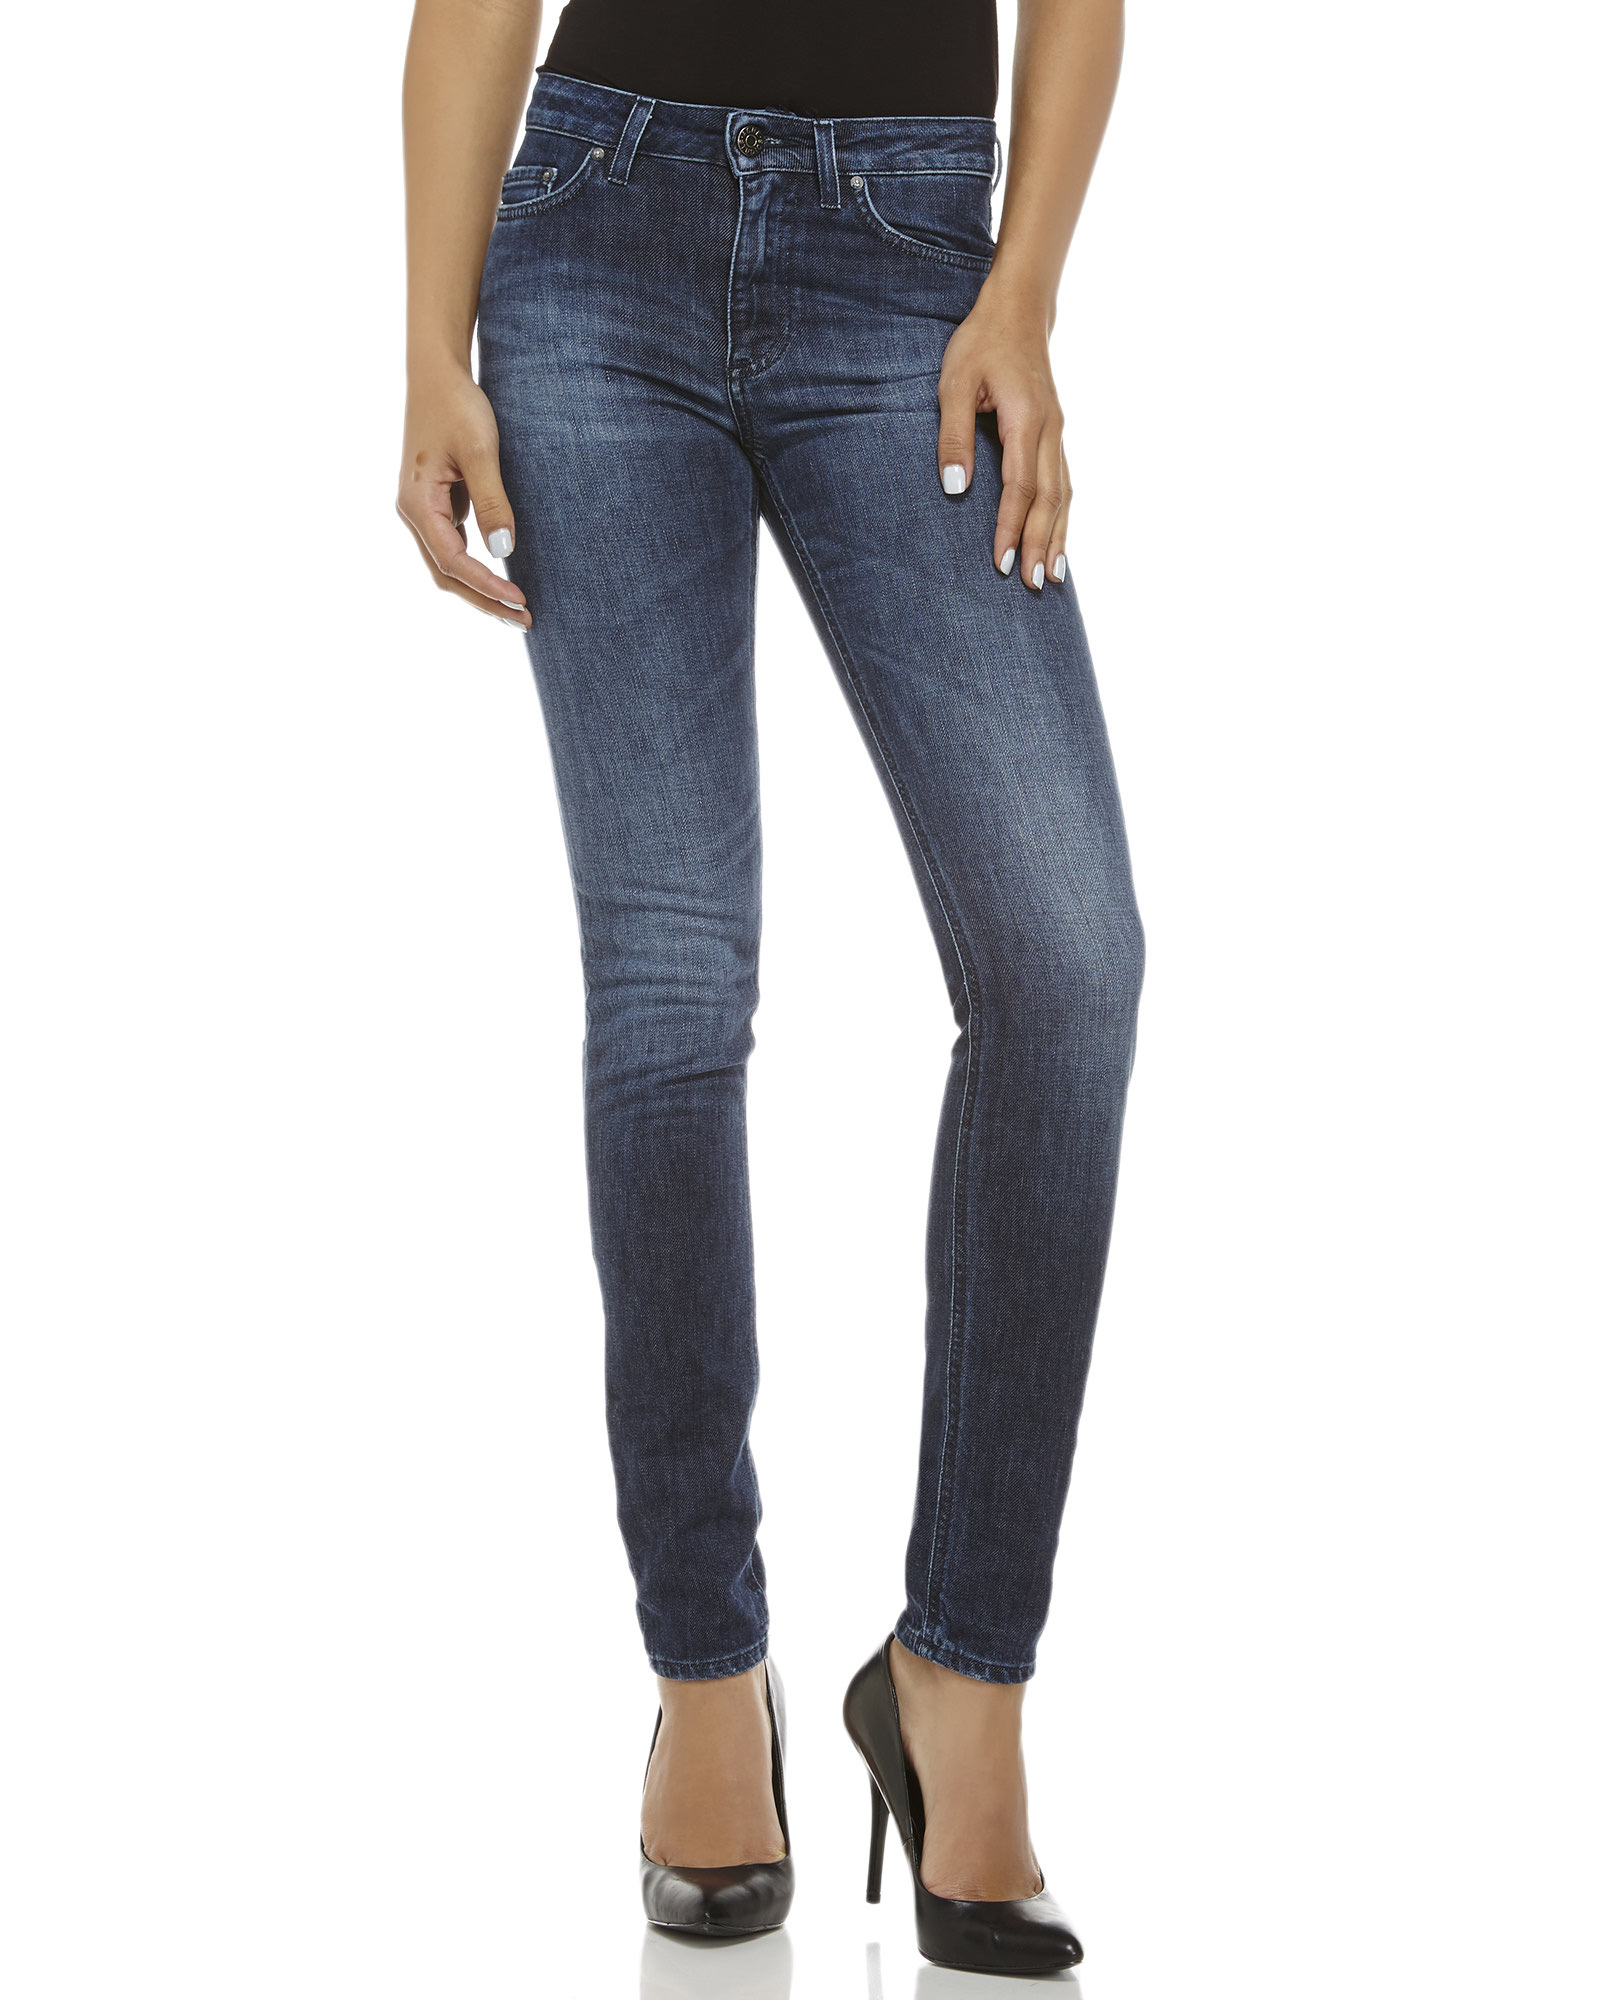 acne skin 5 jeans review